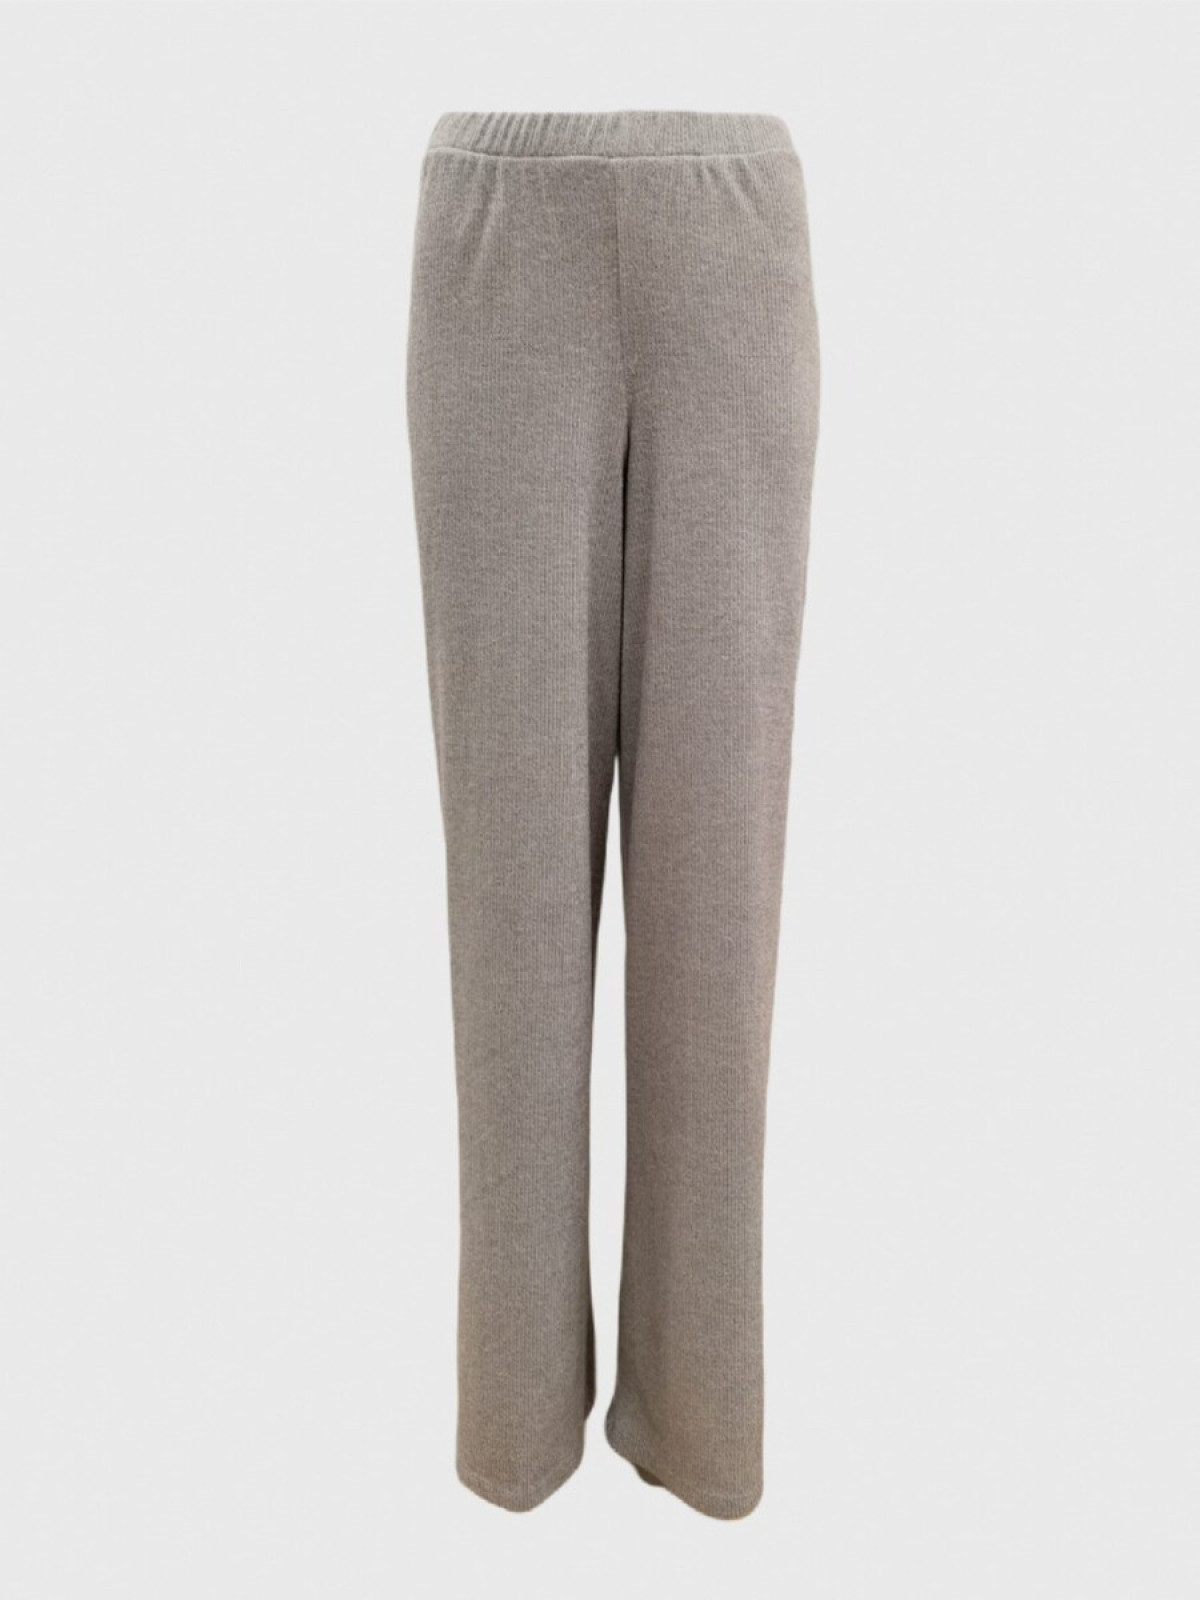 GRAY KNIT TROUSERS